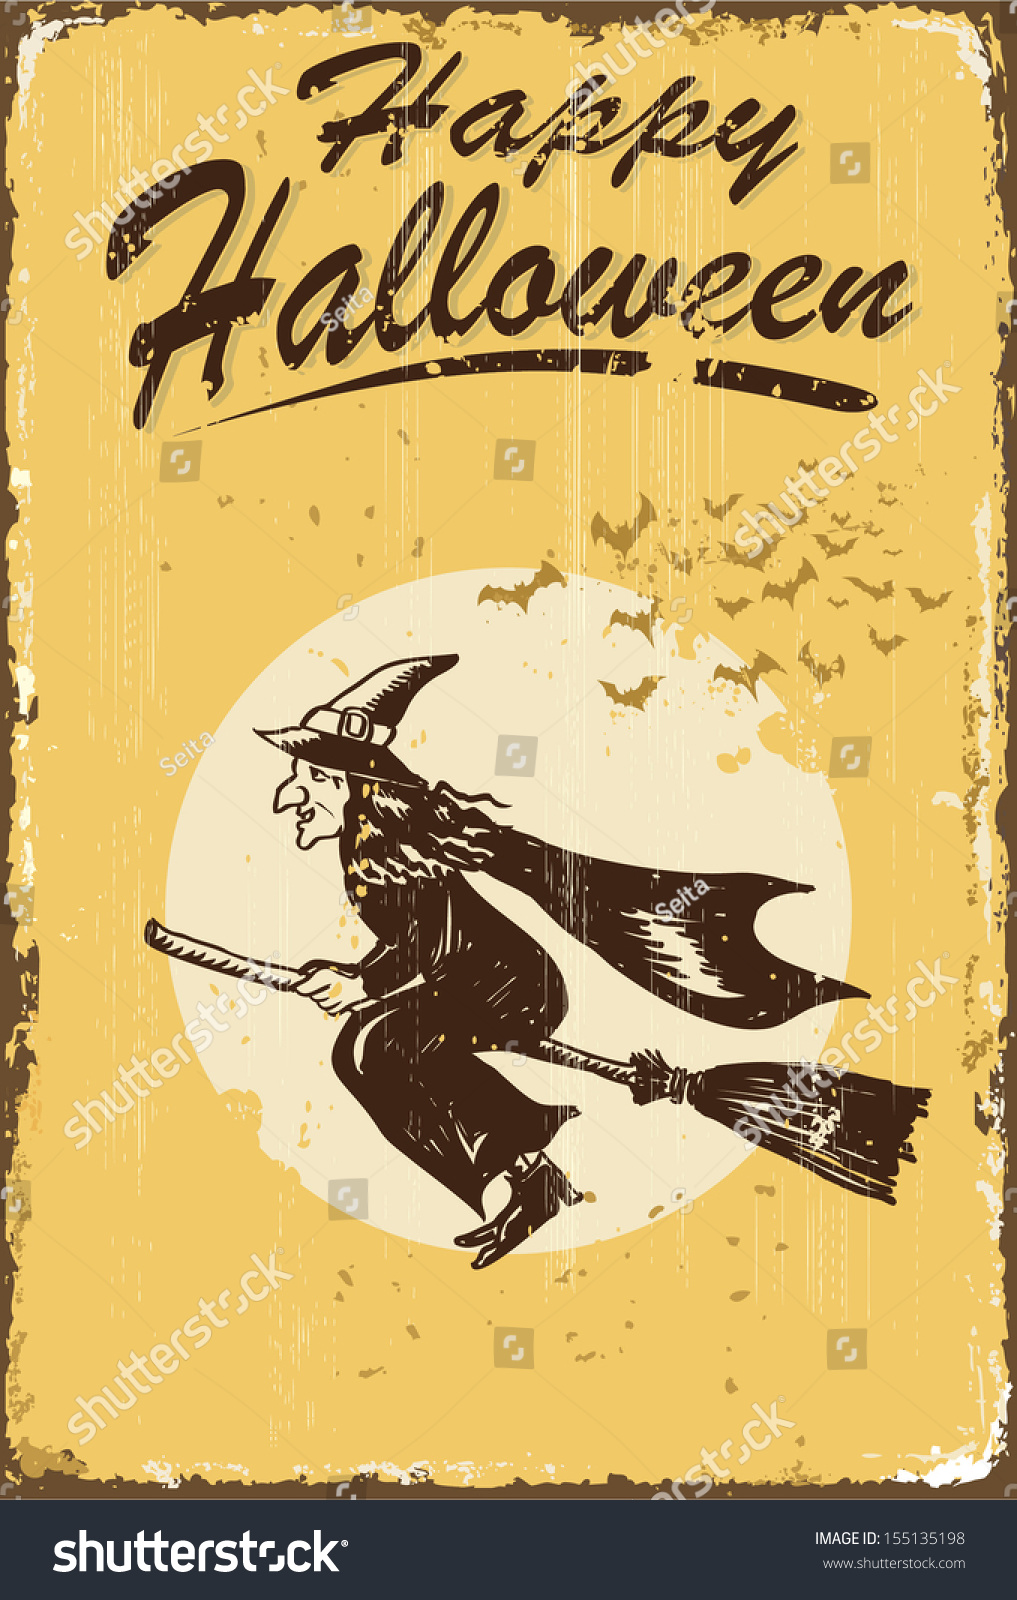 Vintage Happy Halloween Sign Stock Vector Illustration ...